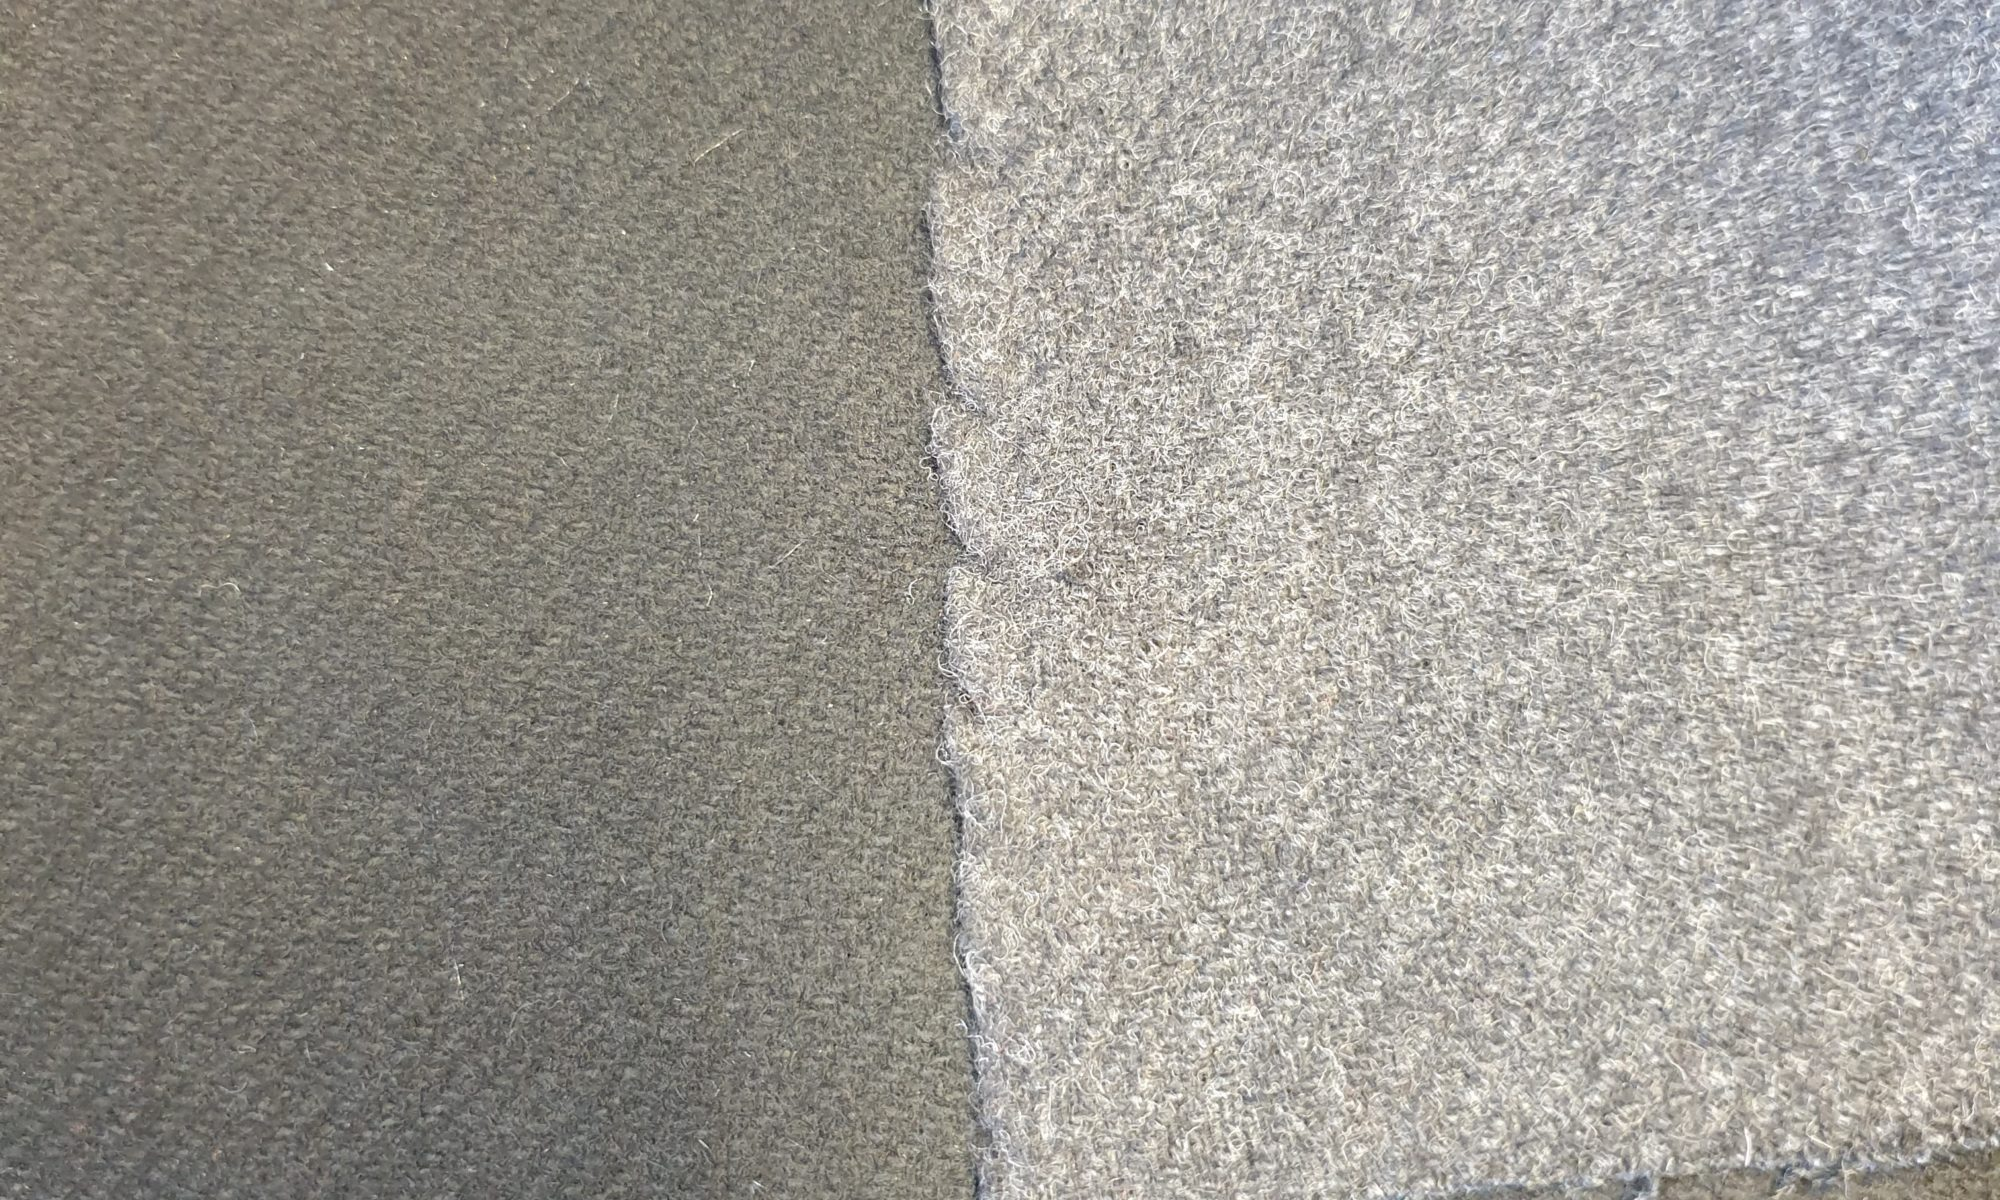 7543 pure virgin wool blend with silk for heavy melton coat fabric WIDTH cm140 WEIGHT gr600 - gr428 square meter - COMPOSITION 98 wool 2 silk - black 200mts – charcoal 100mts